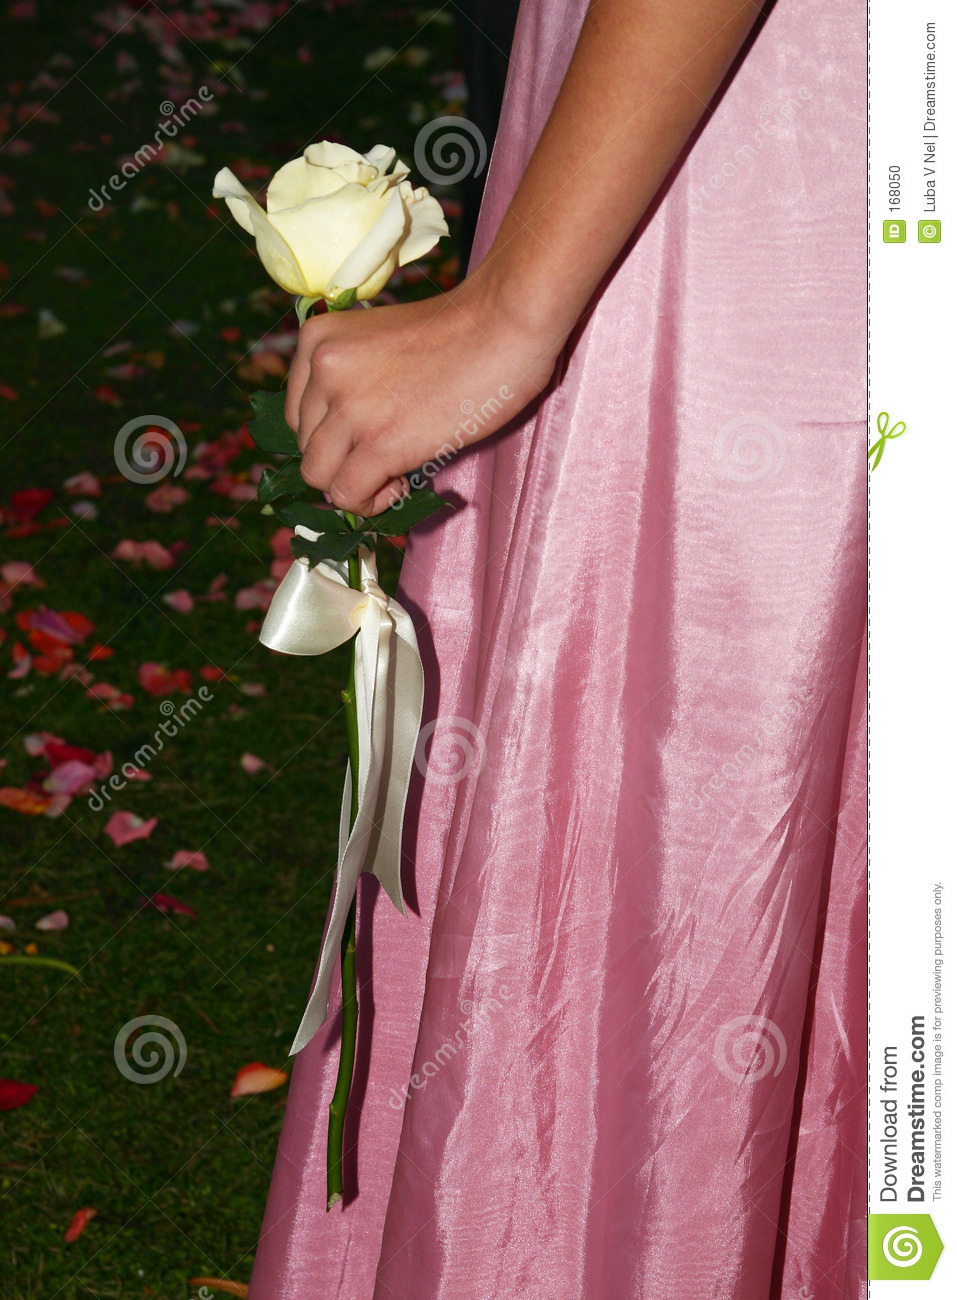 Girl in pink with white rose